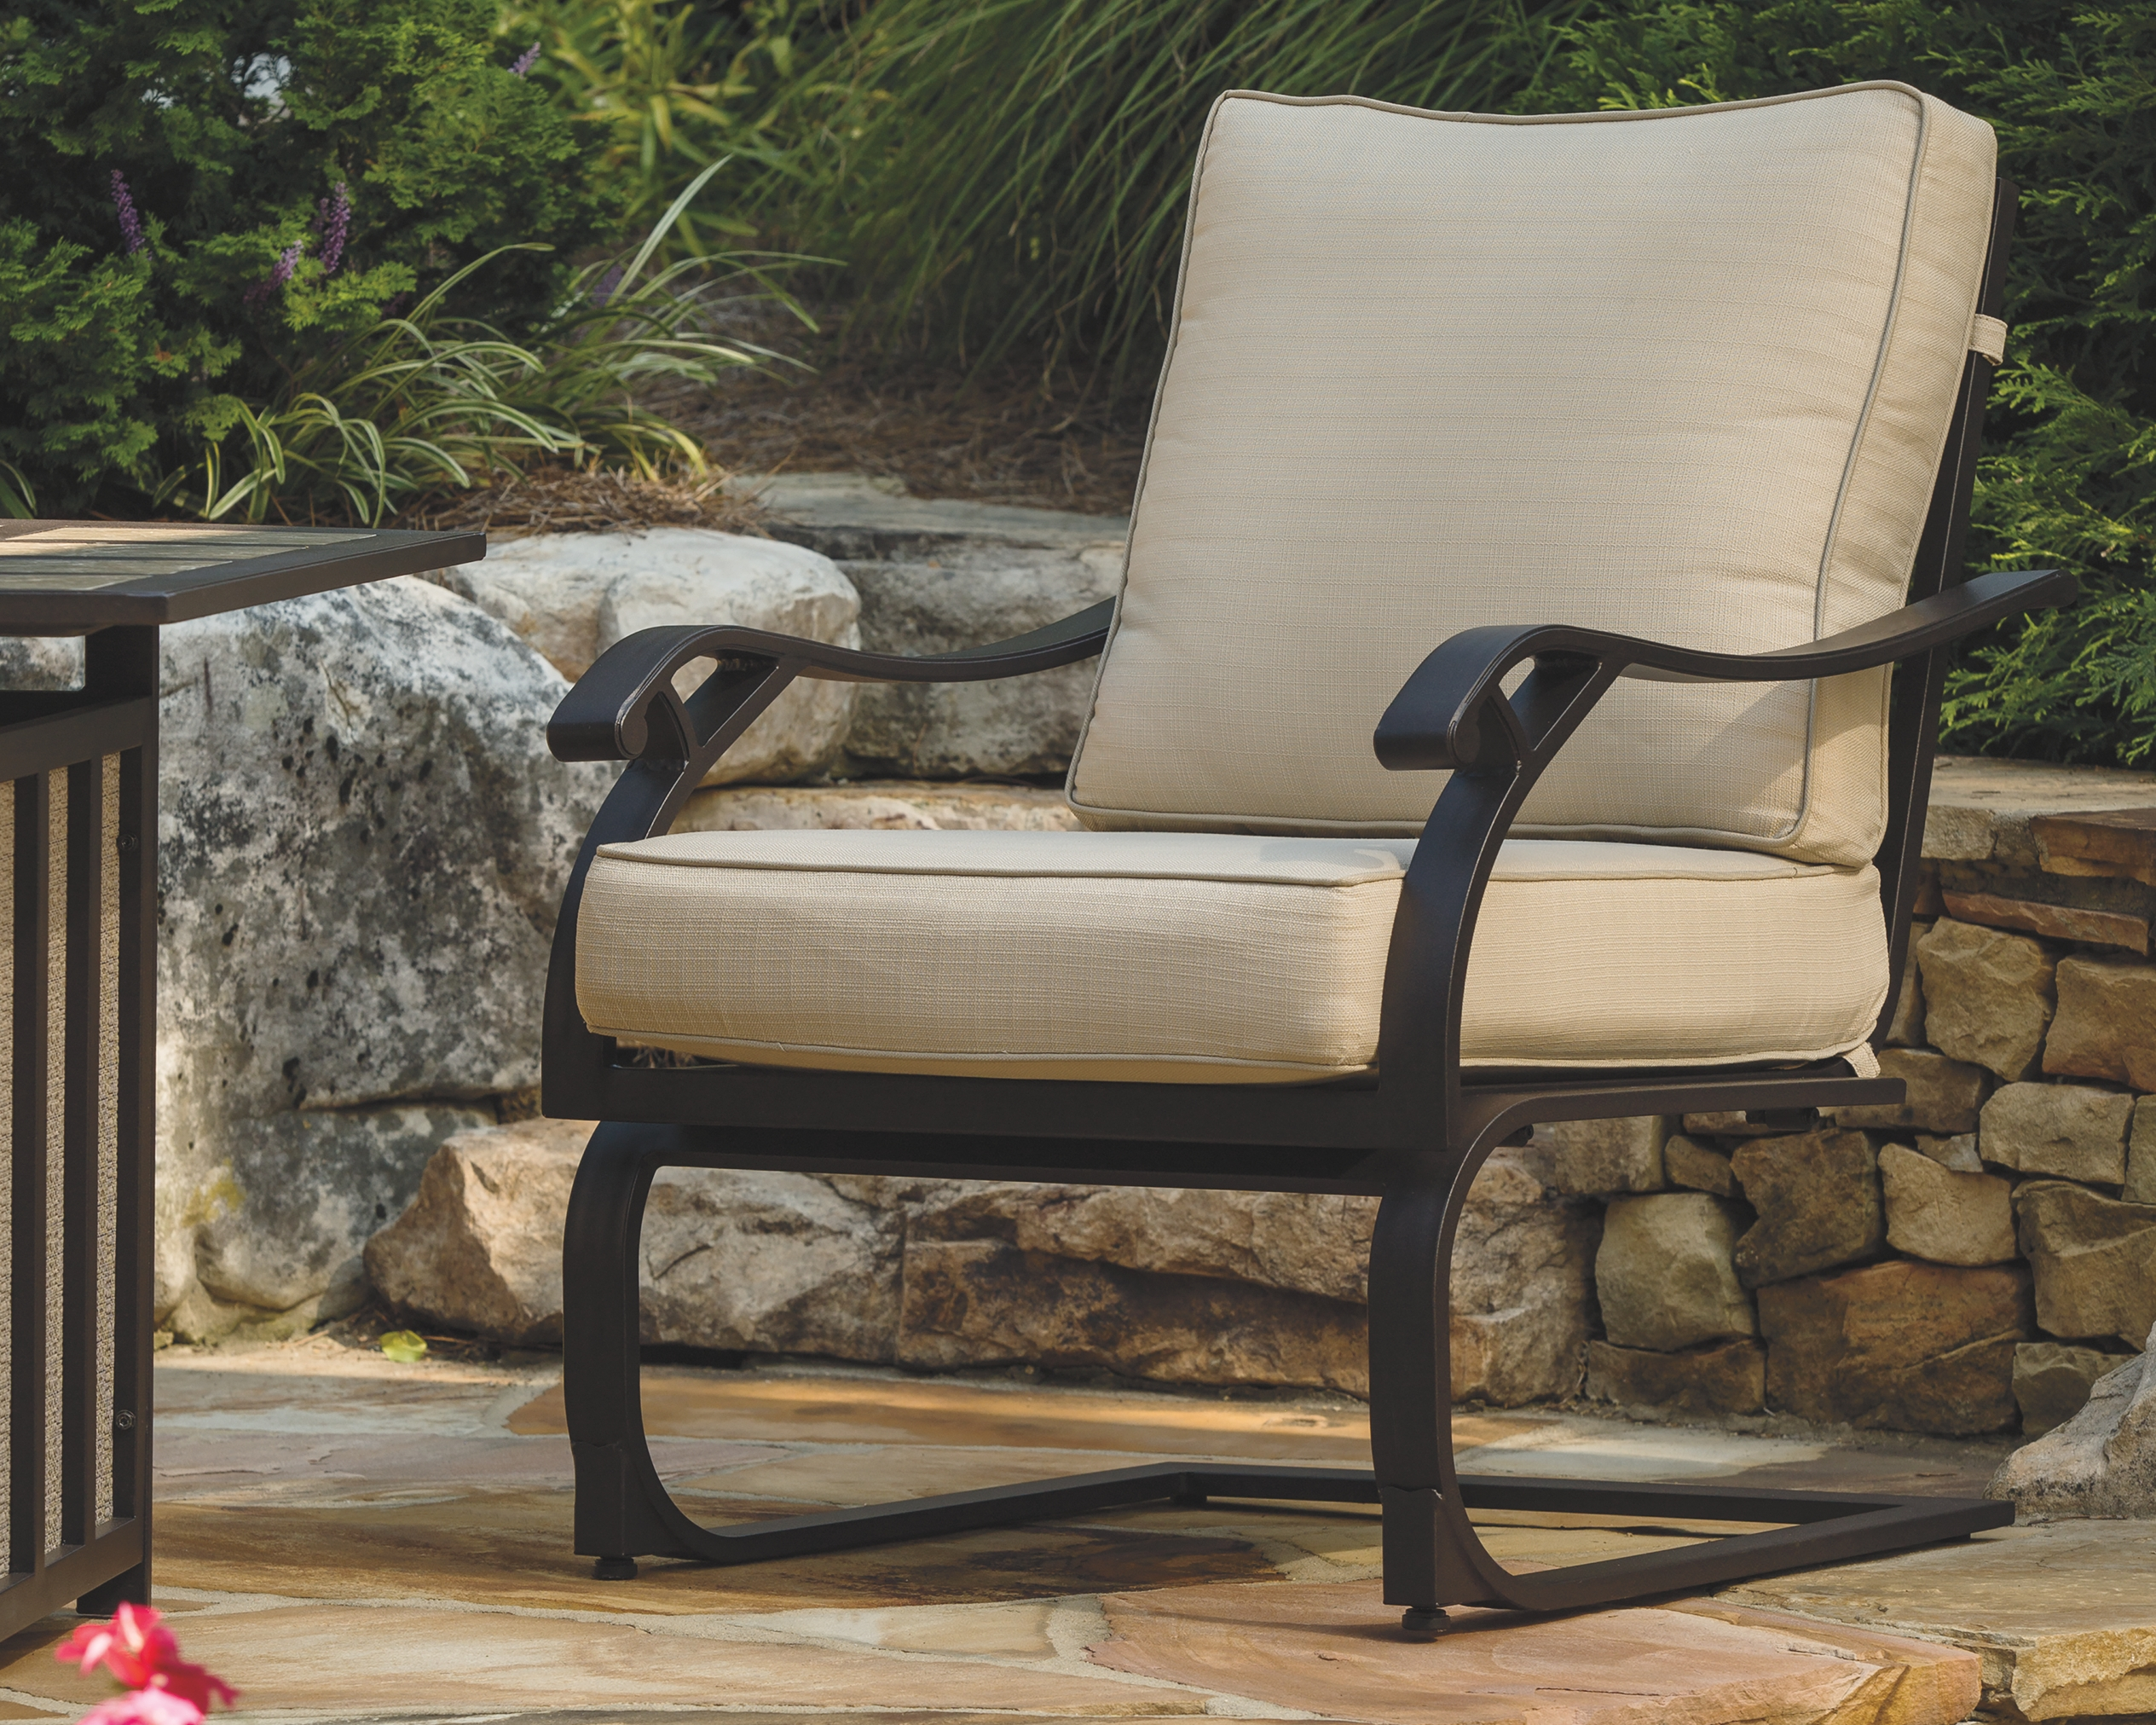 Wandon Lounge Chair Set Of 4 Beige Brown Patio Seating Chair